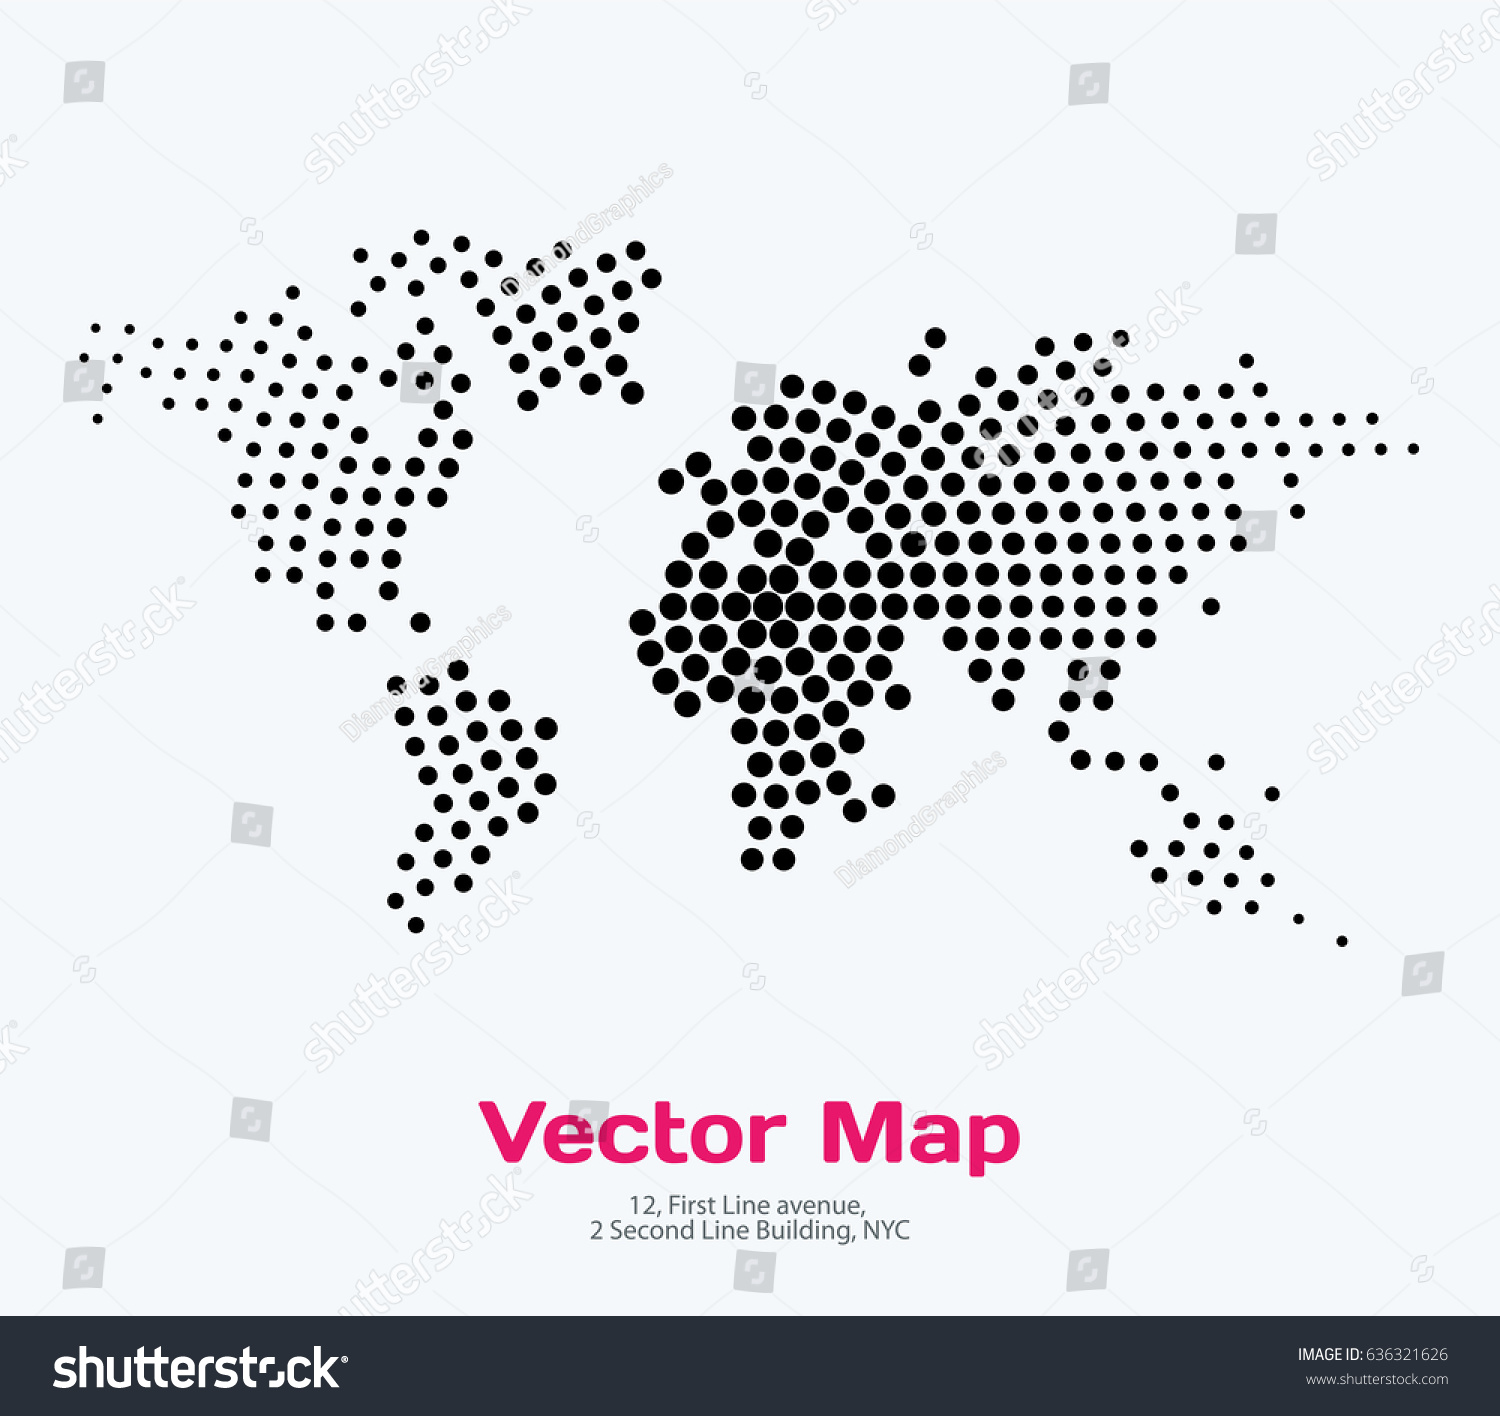 Vector world map template round spots vectores en stock 636321626 vector world map template with round spots dots for business graphic design abstract art gumiabroncs Gallery